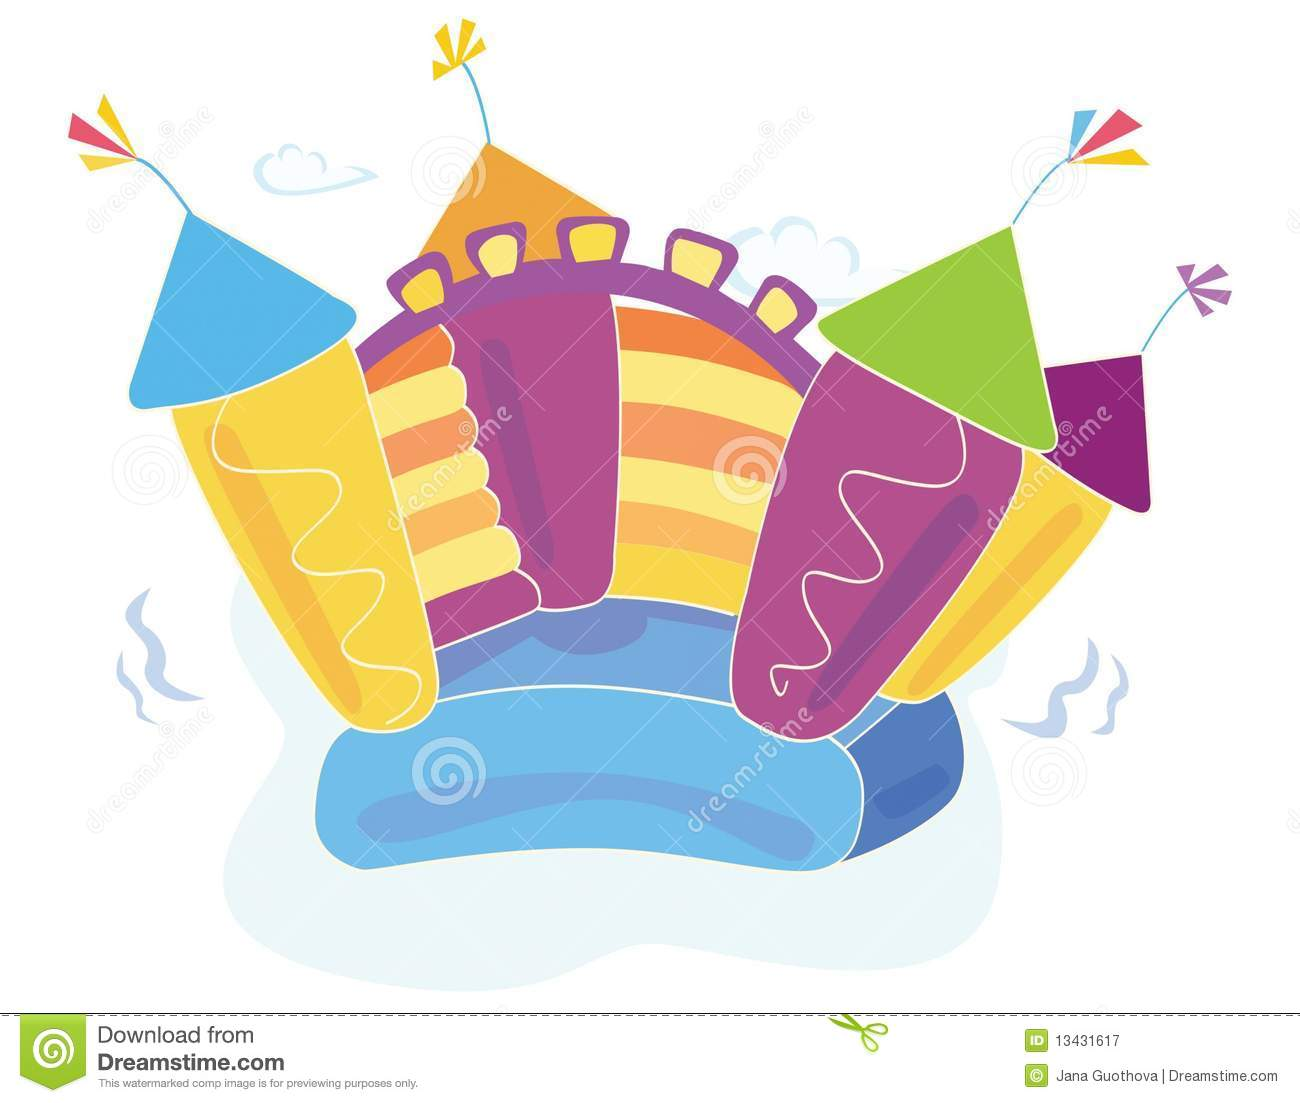 free bounce house clipart - photo #19